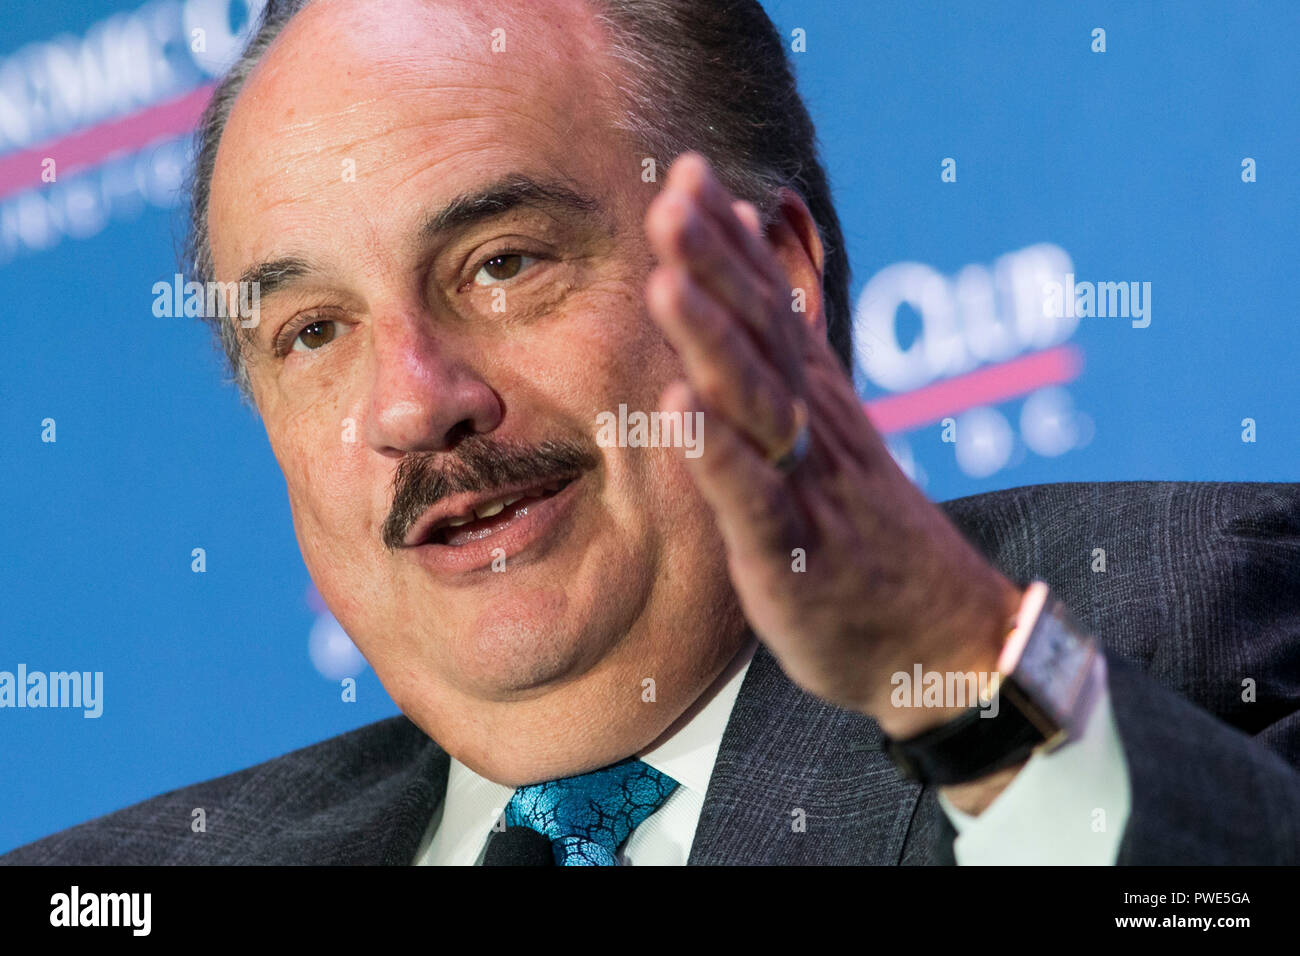 Washington DC, USA. 15th Oct 2018. Larry Merlo, President and CEO of CVS Health, participates in an interview during an Economic Club of Washington event in Washington, D.C., on October 15, 2018. Credit: Kristoffer Tripplaar/Alamy Live News Stock Photo